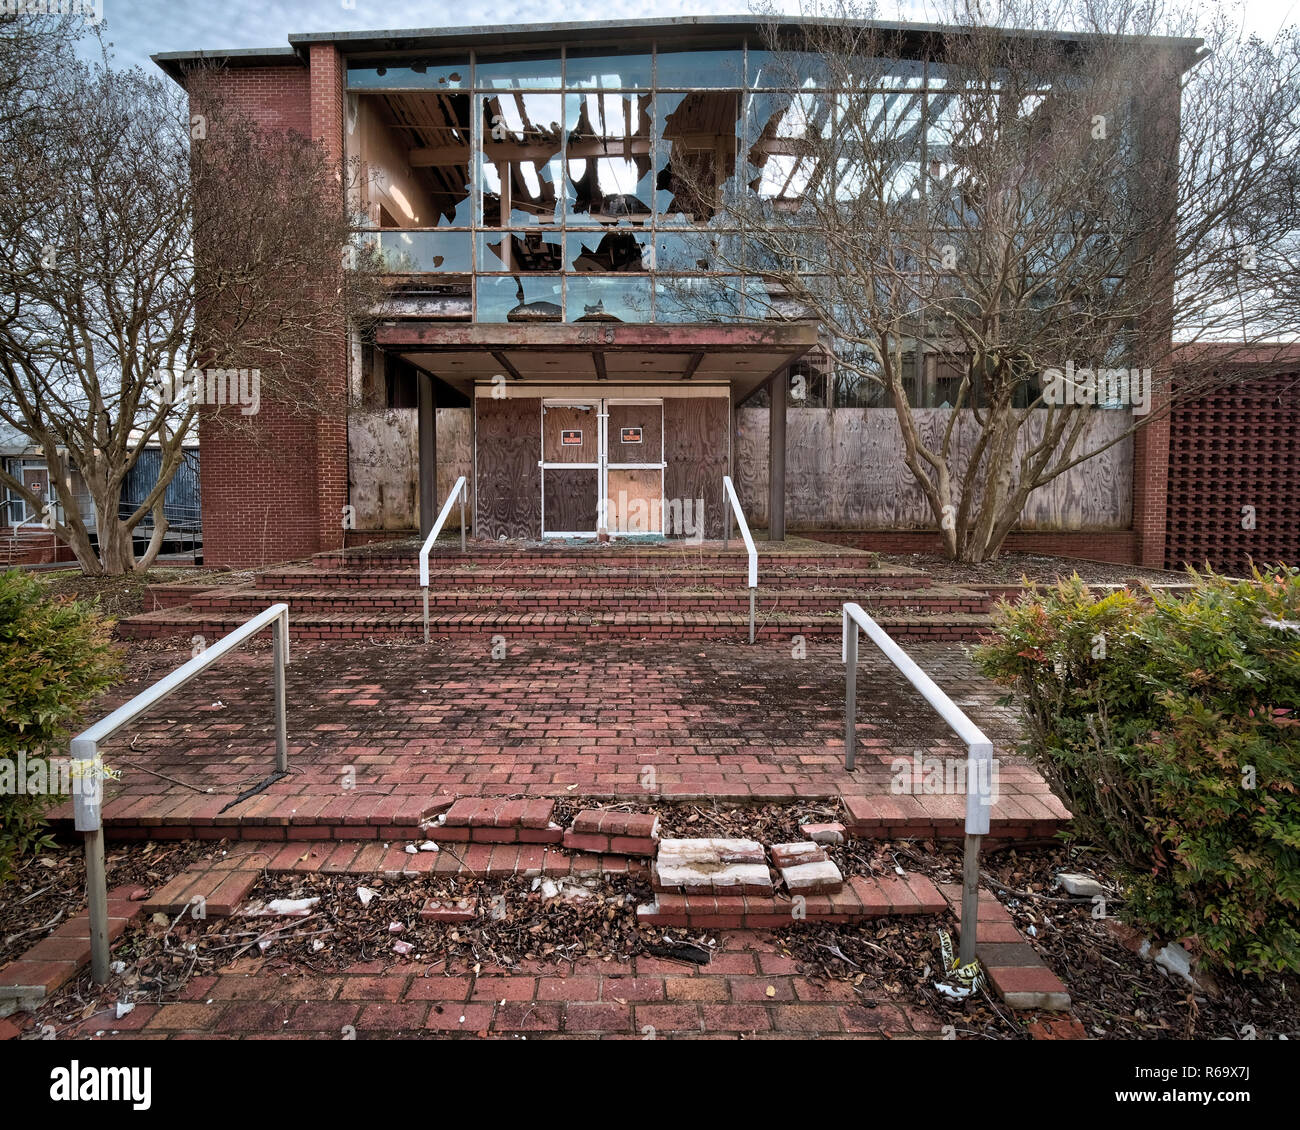 Abandoned And Vandalized Dixie Furniture Plant Office And Showroom Building Lexington North Carolina Industrial Manufacturing That Had Moved Away Stock Photo Alamy